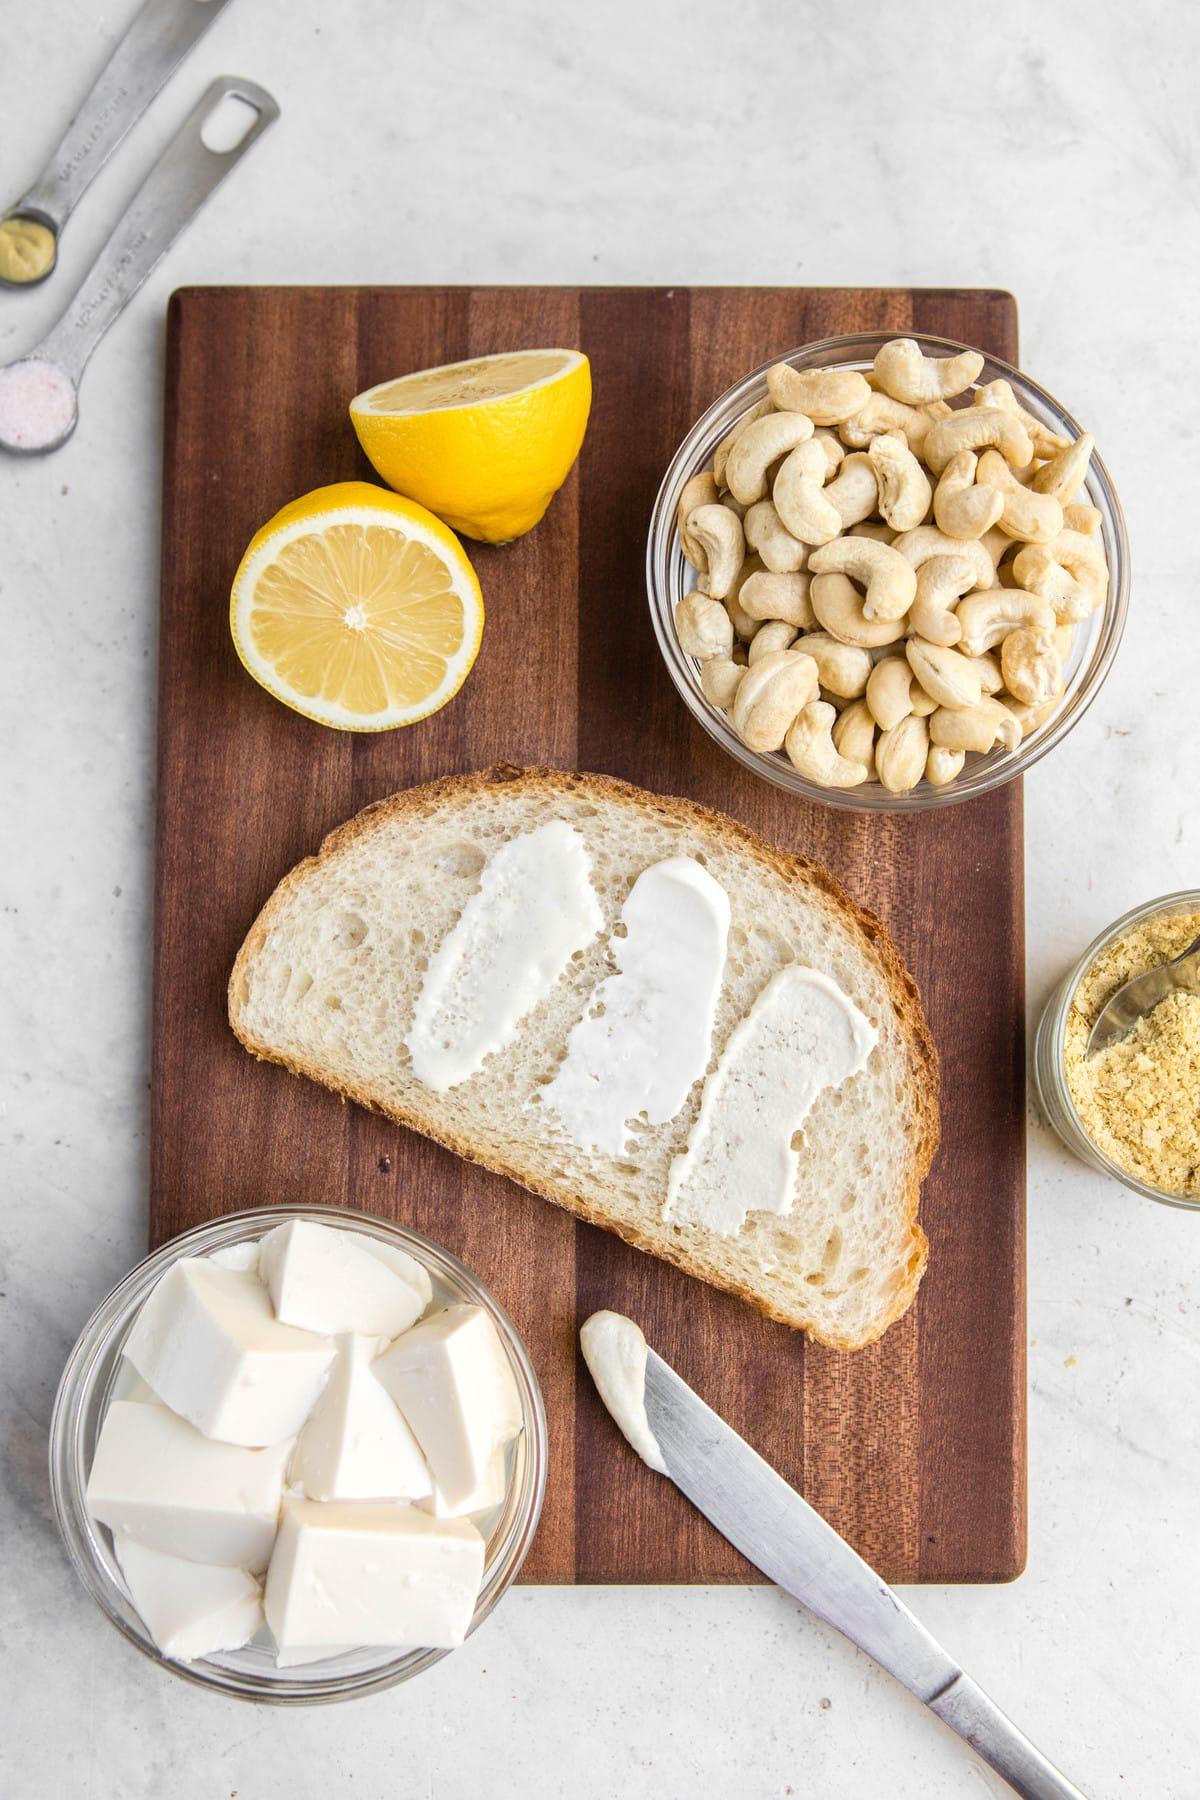 jars of mayo, piece of bread, and mayo ingredients on wood cutting board